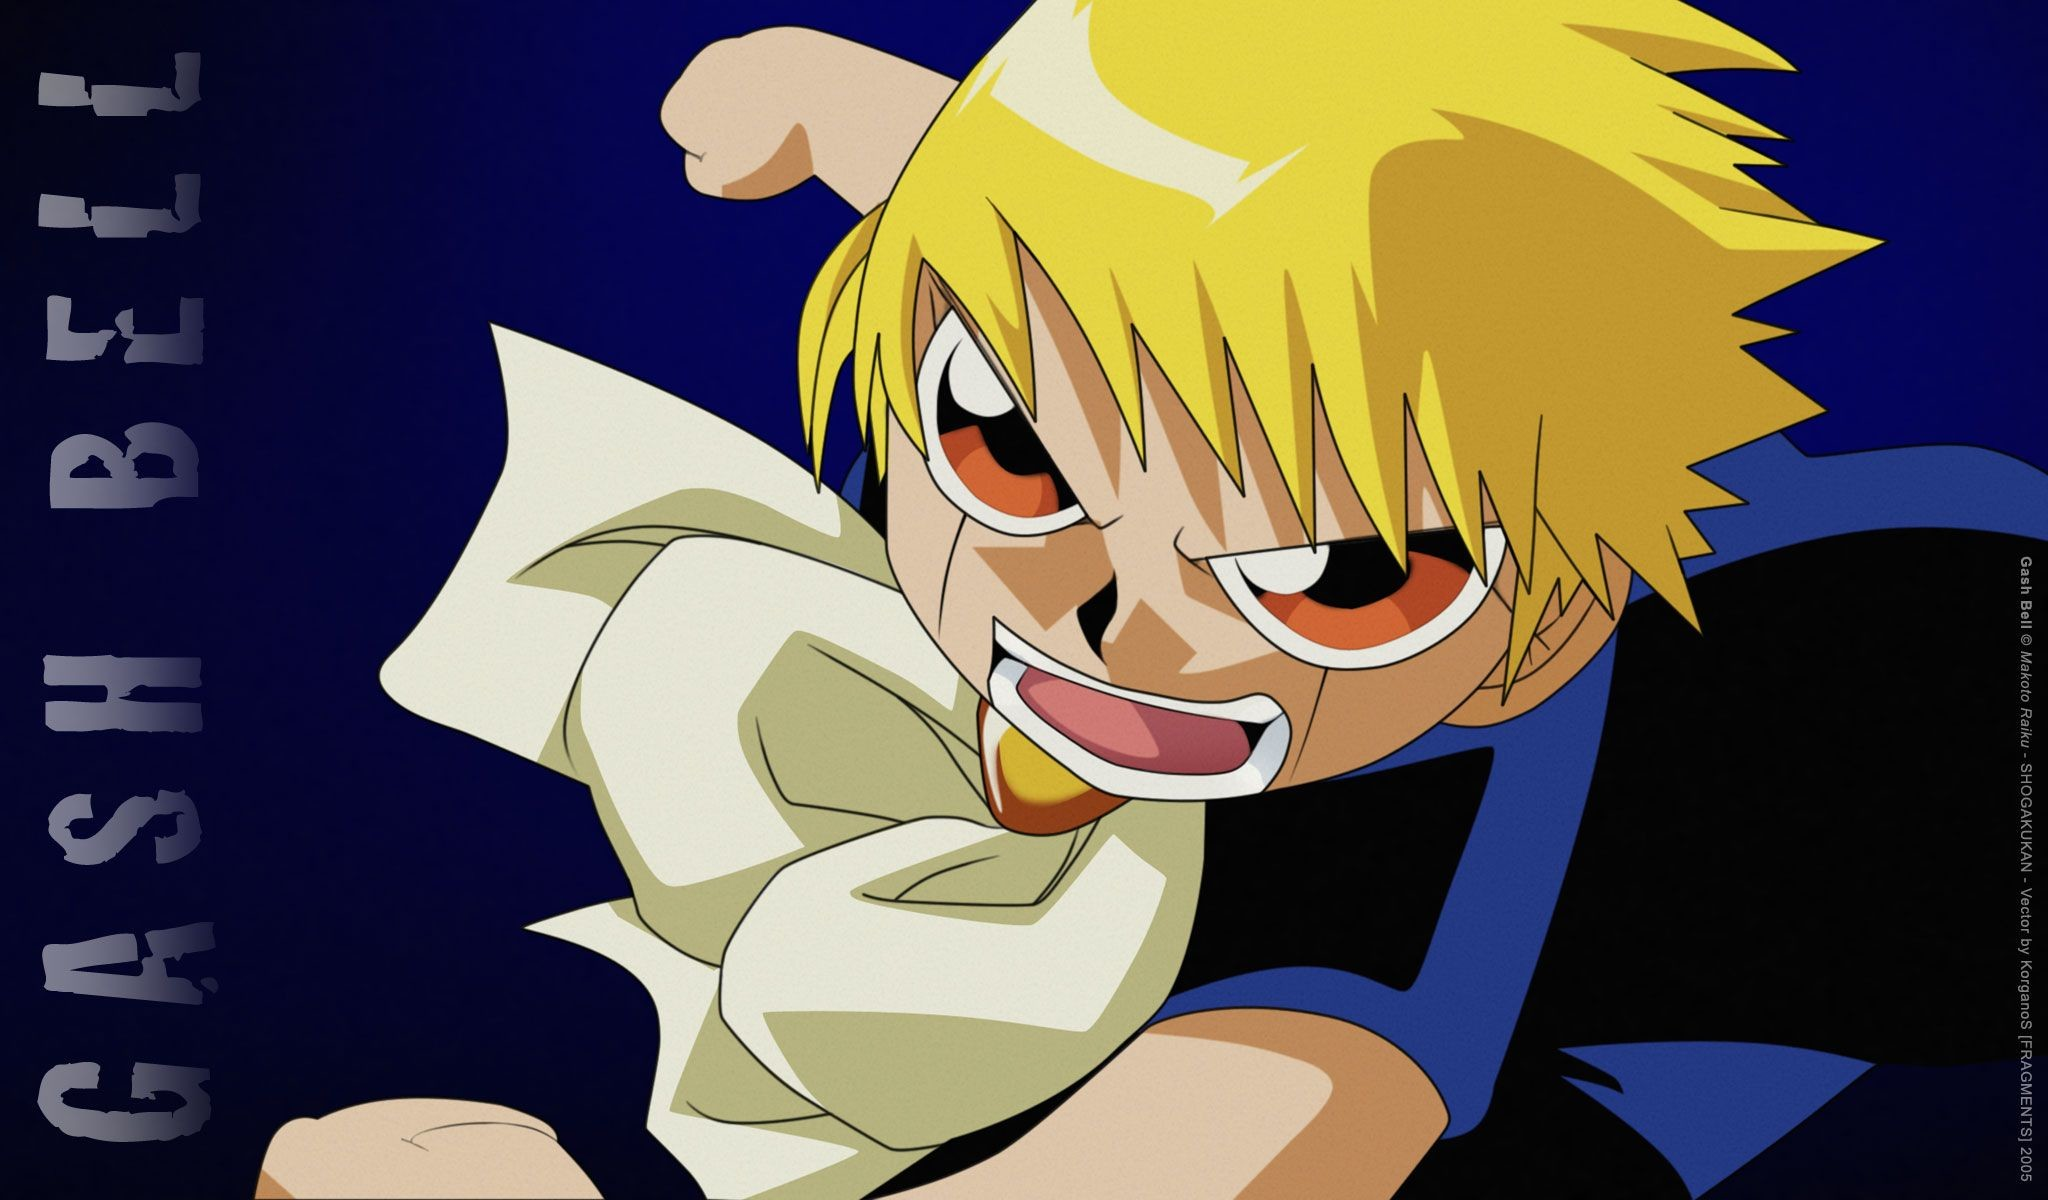 2048x1200 Amazing Gash(Zatch) Bell Pictures & Backgrounds